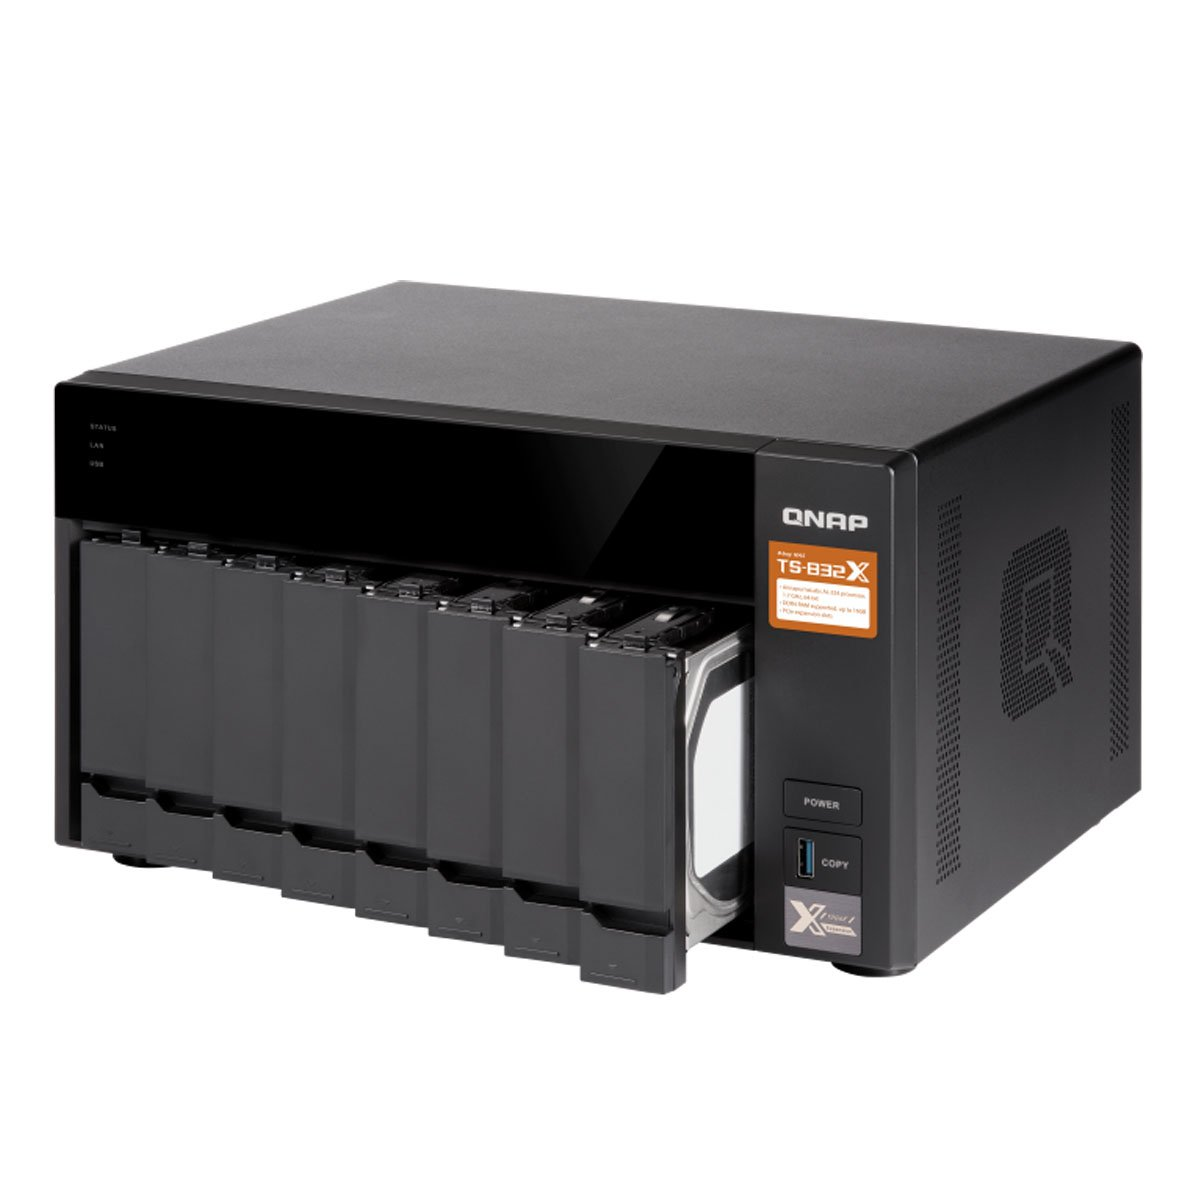 QNAP TS-832X-8G-US High-Performance 8-Bay 64-bit NAS with Built-in 2 x 10GbE (SFP+) Network, Hardware Encryption, Quad Core 1.7GHz, 8GB RAM, 2 x 1GbE by QNAP (Image #2)